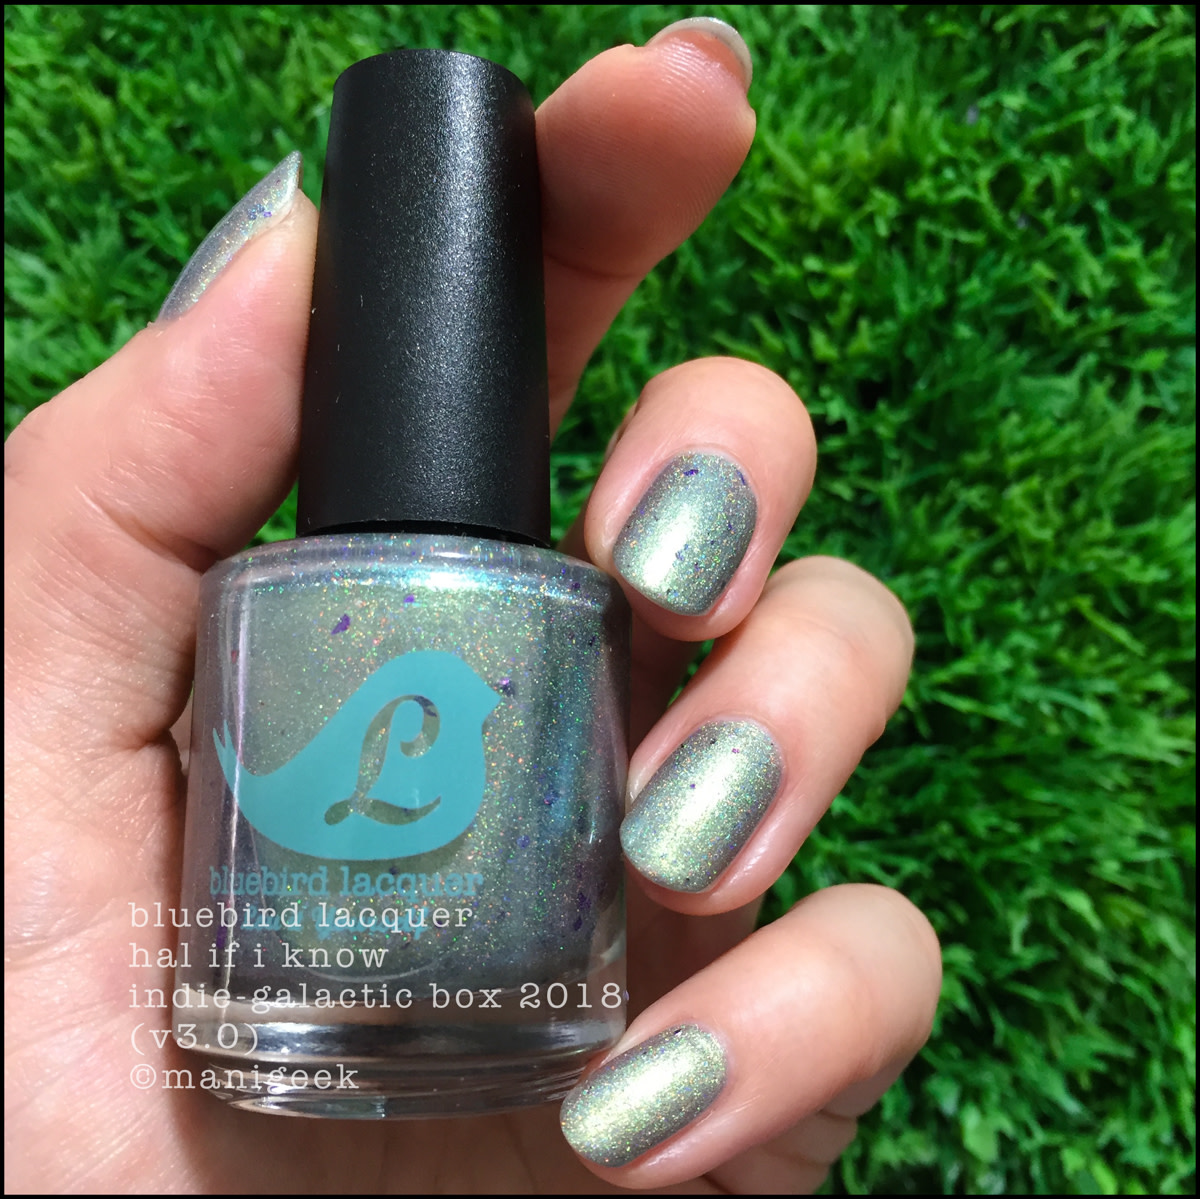 Bluebird Lacquer Hal If I Know 2 - Indie Galactic Box 3 2018